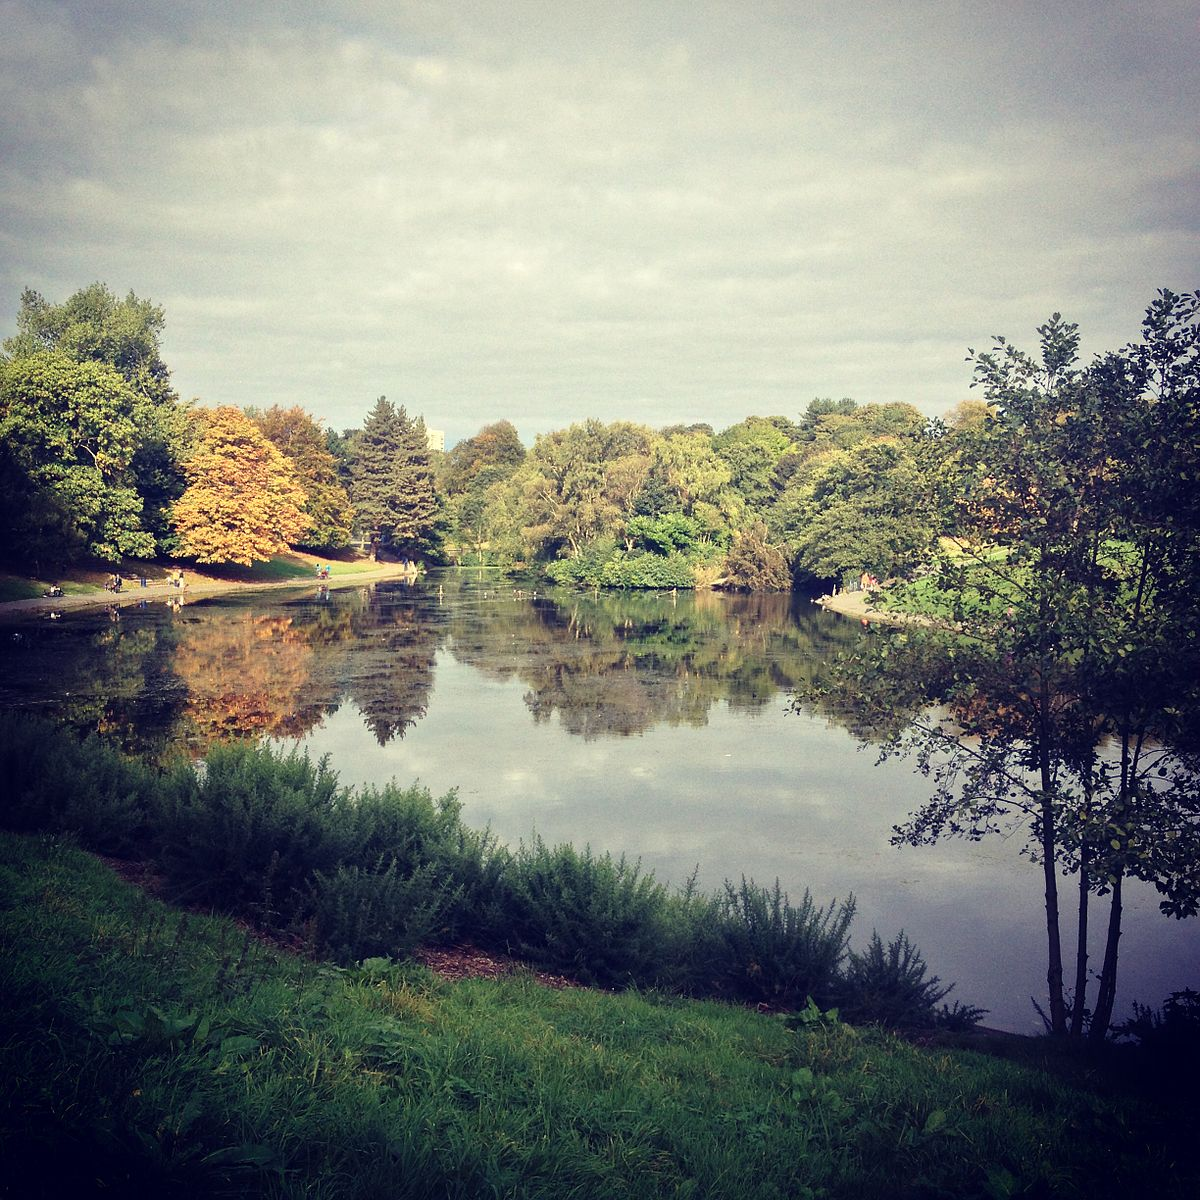 sefton park liverpool wikipedia file research commons wikimedia diversity woolton woods place history there wiki